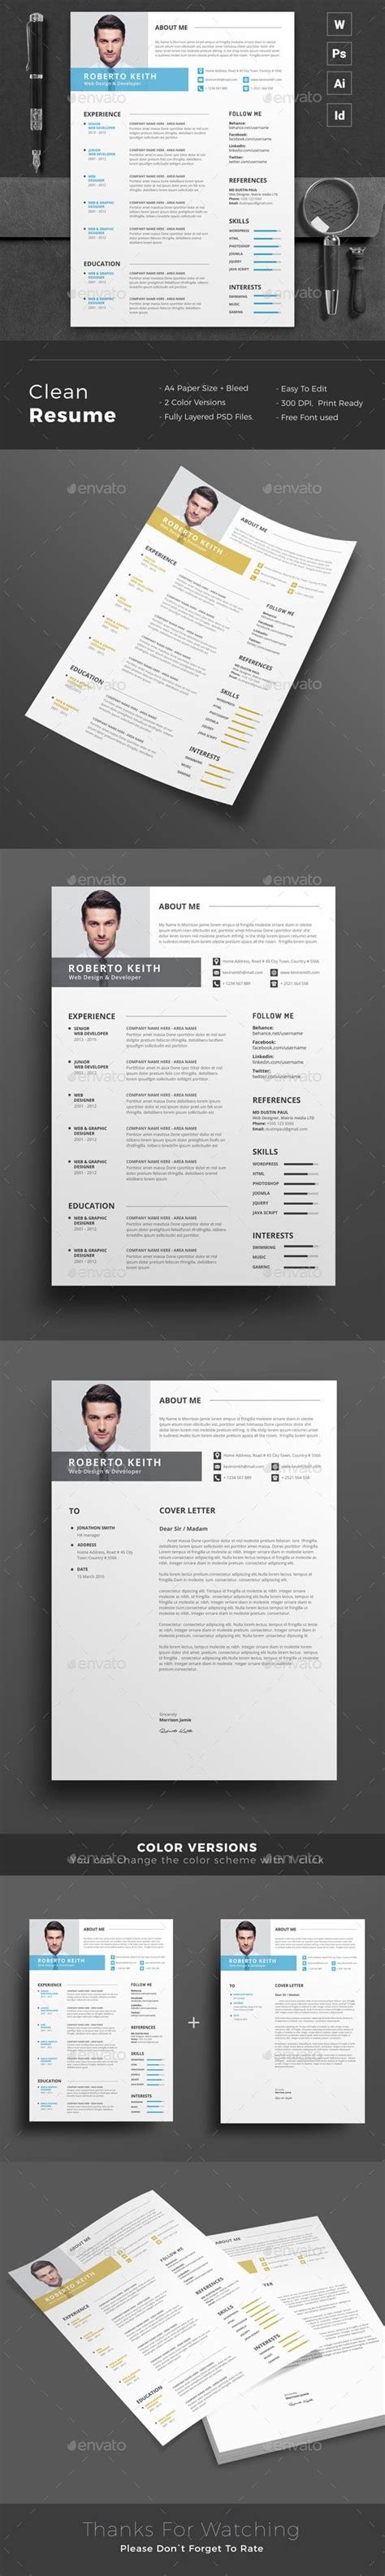 Resume Help Microsoft Word by 25 Best Ideas About Resume On Resume Help